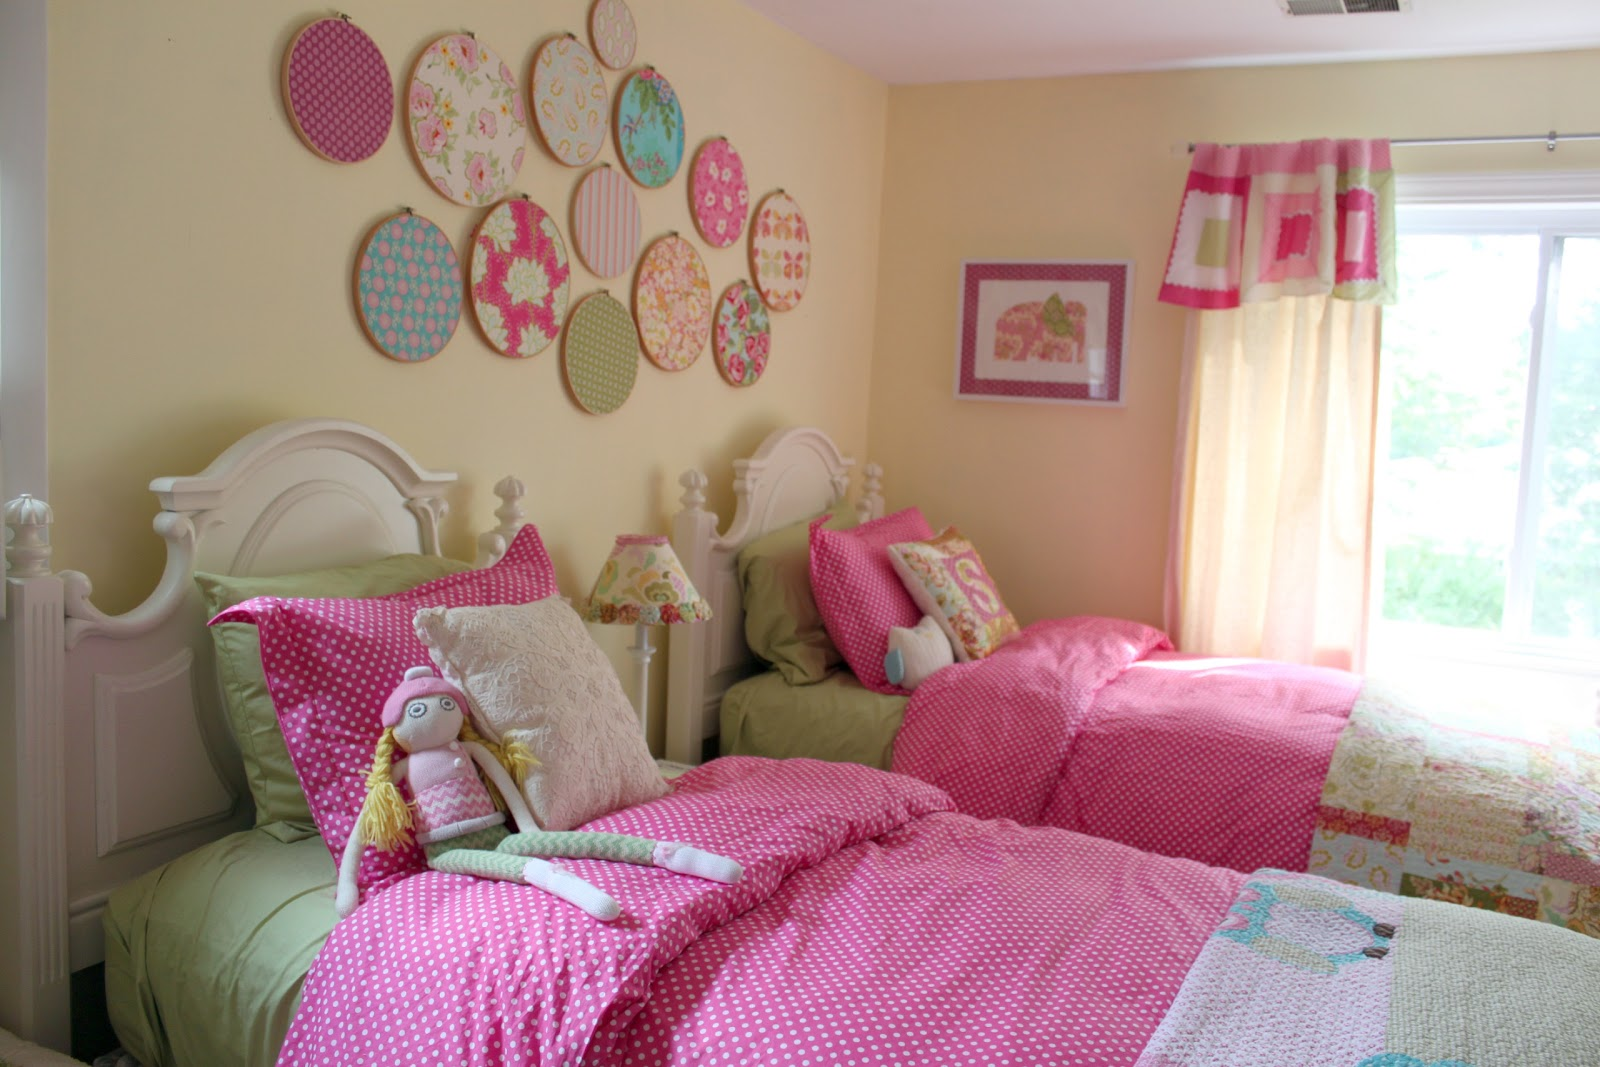 Decorating girls shared toddler bedroom the cottage mama Ideas for decorating toddler girl room